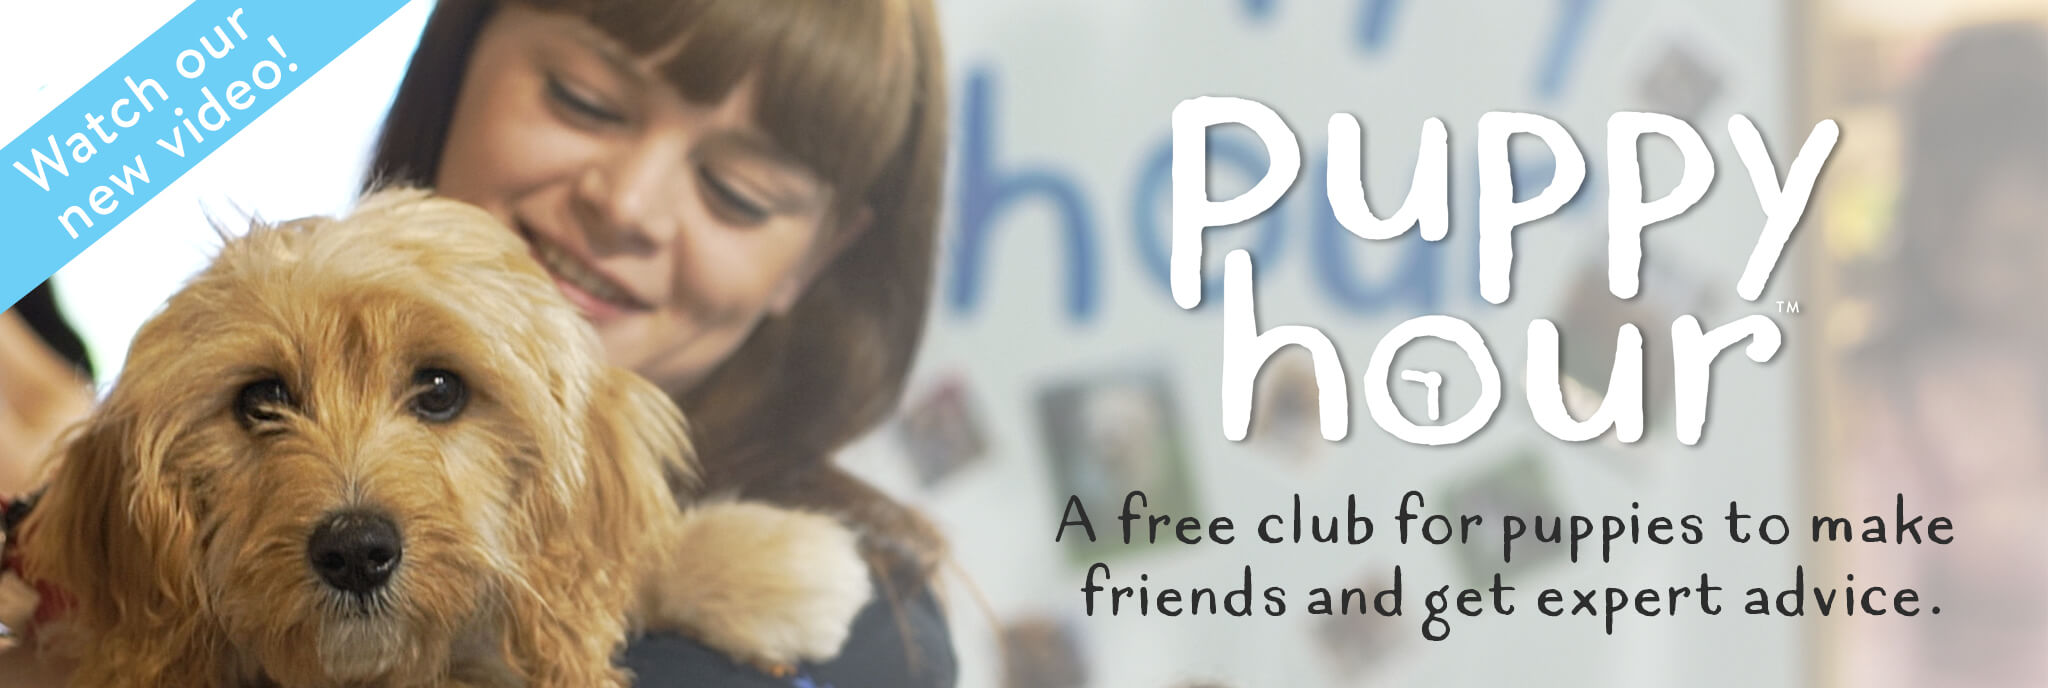 Puppy Hour - A free club for puppies to make friends and get expert advice